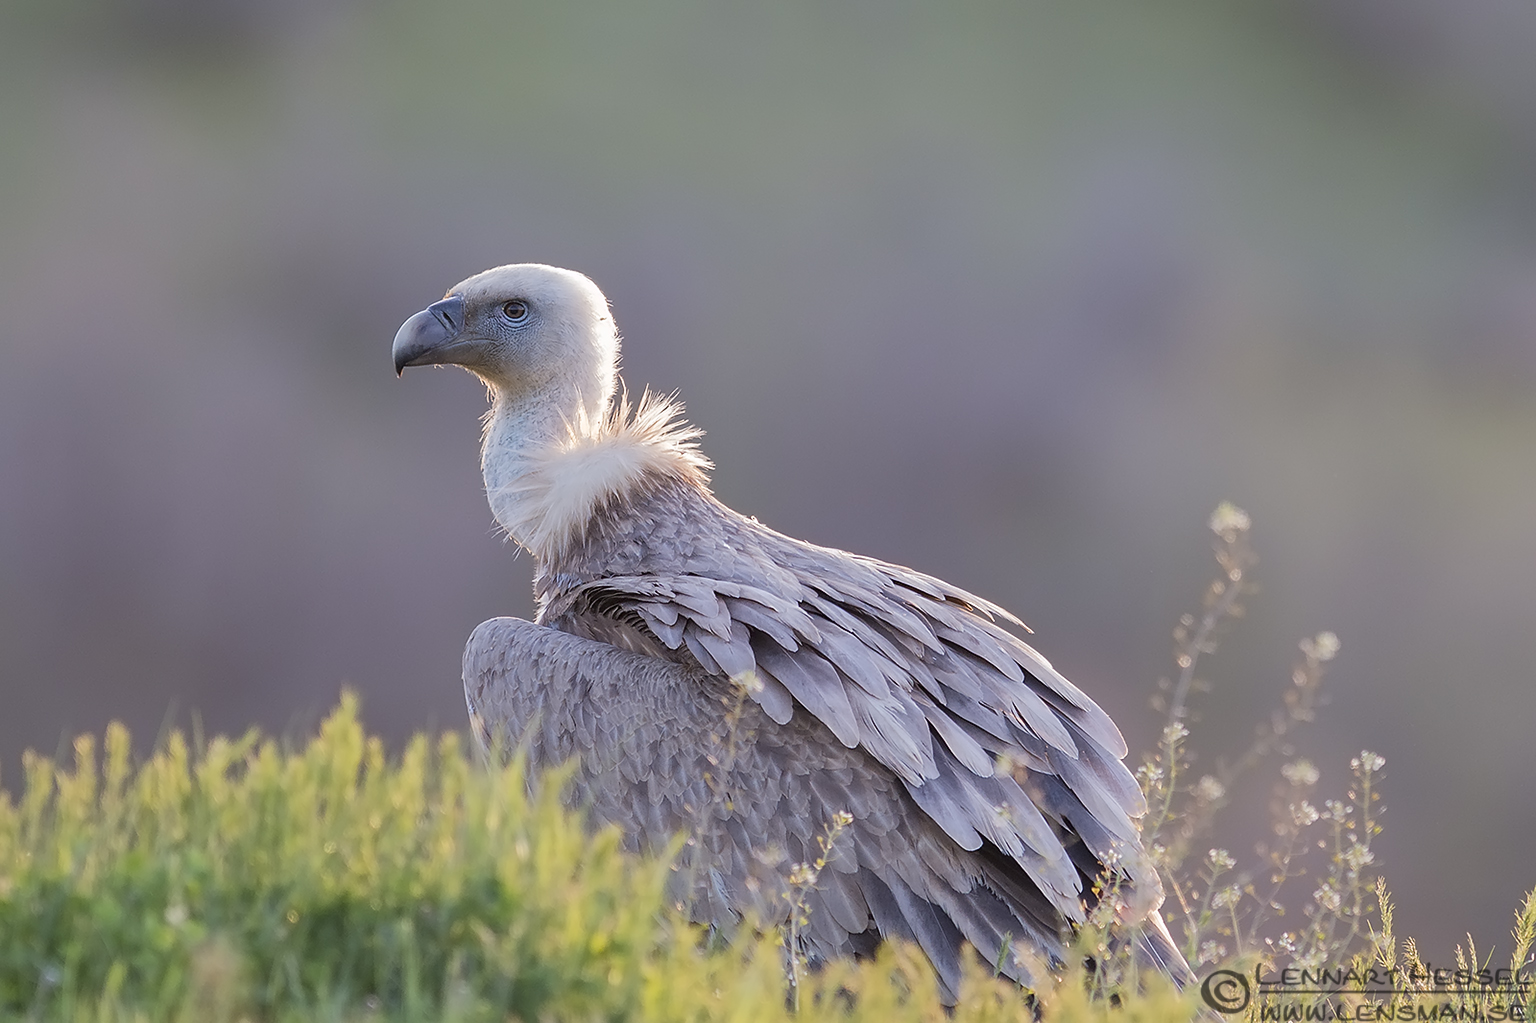 Waiting Griffon Vulture in Bulgaria